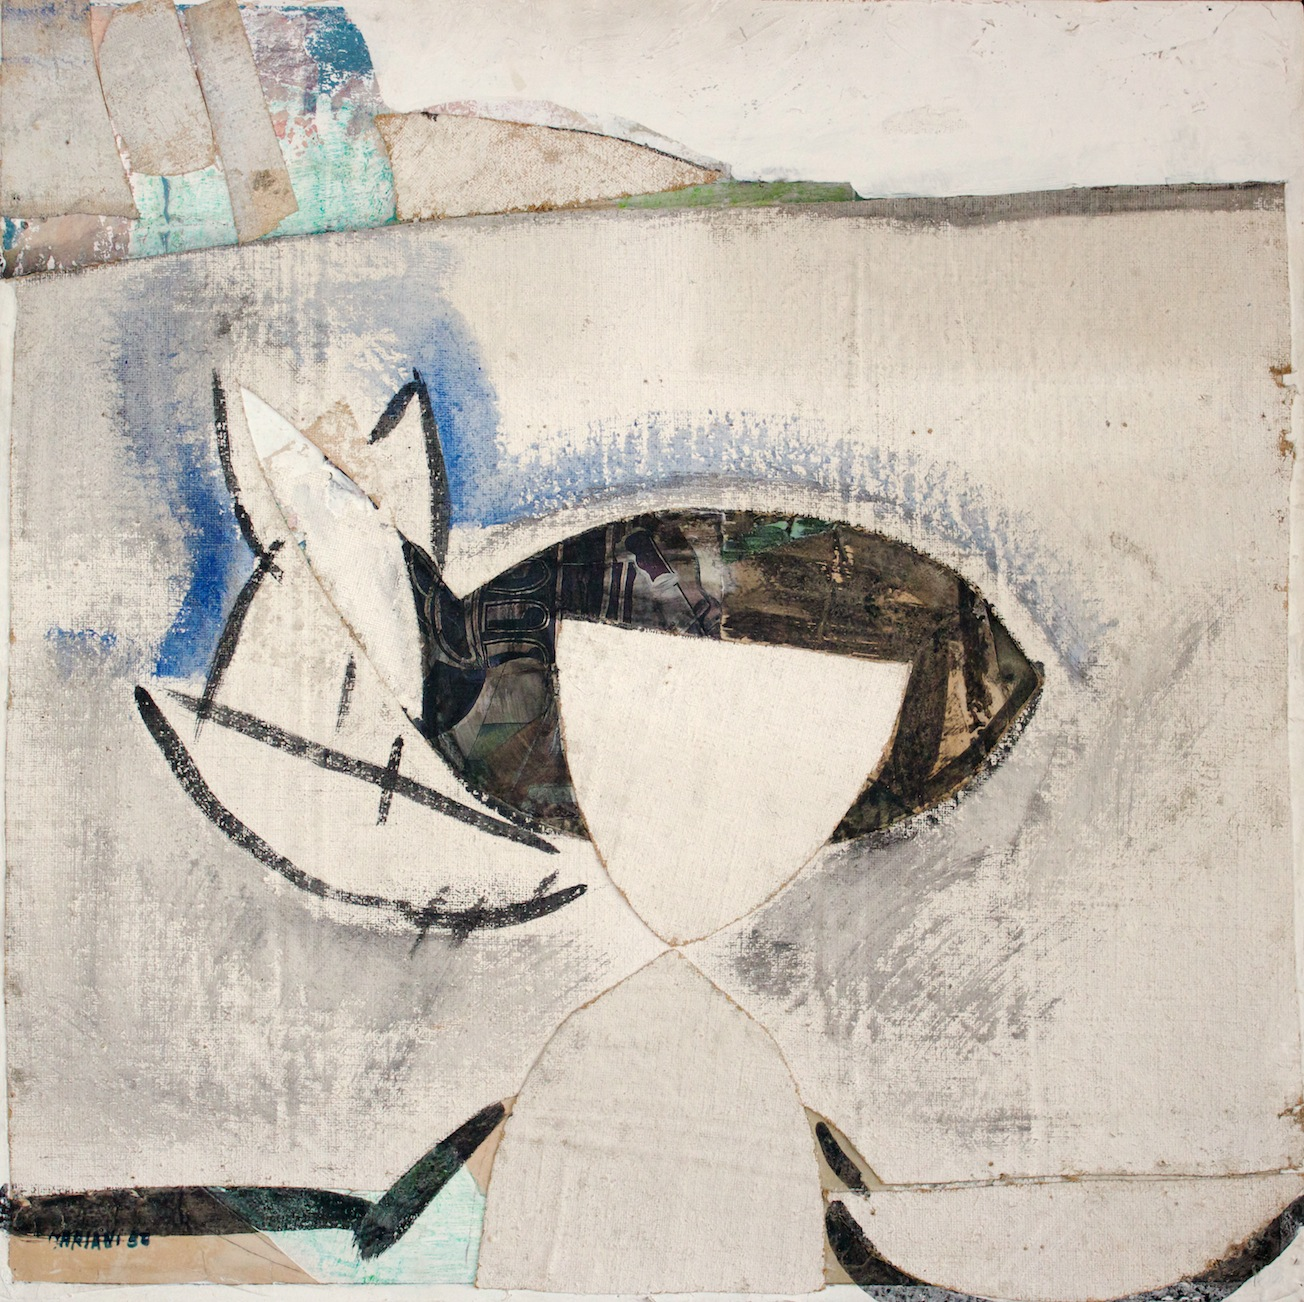 Marcello Mariani - Senza Titolo - Mixed media and collage on canvas applied on board - 1956